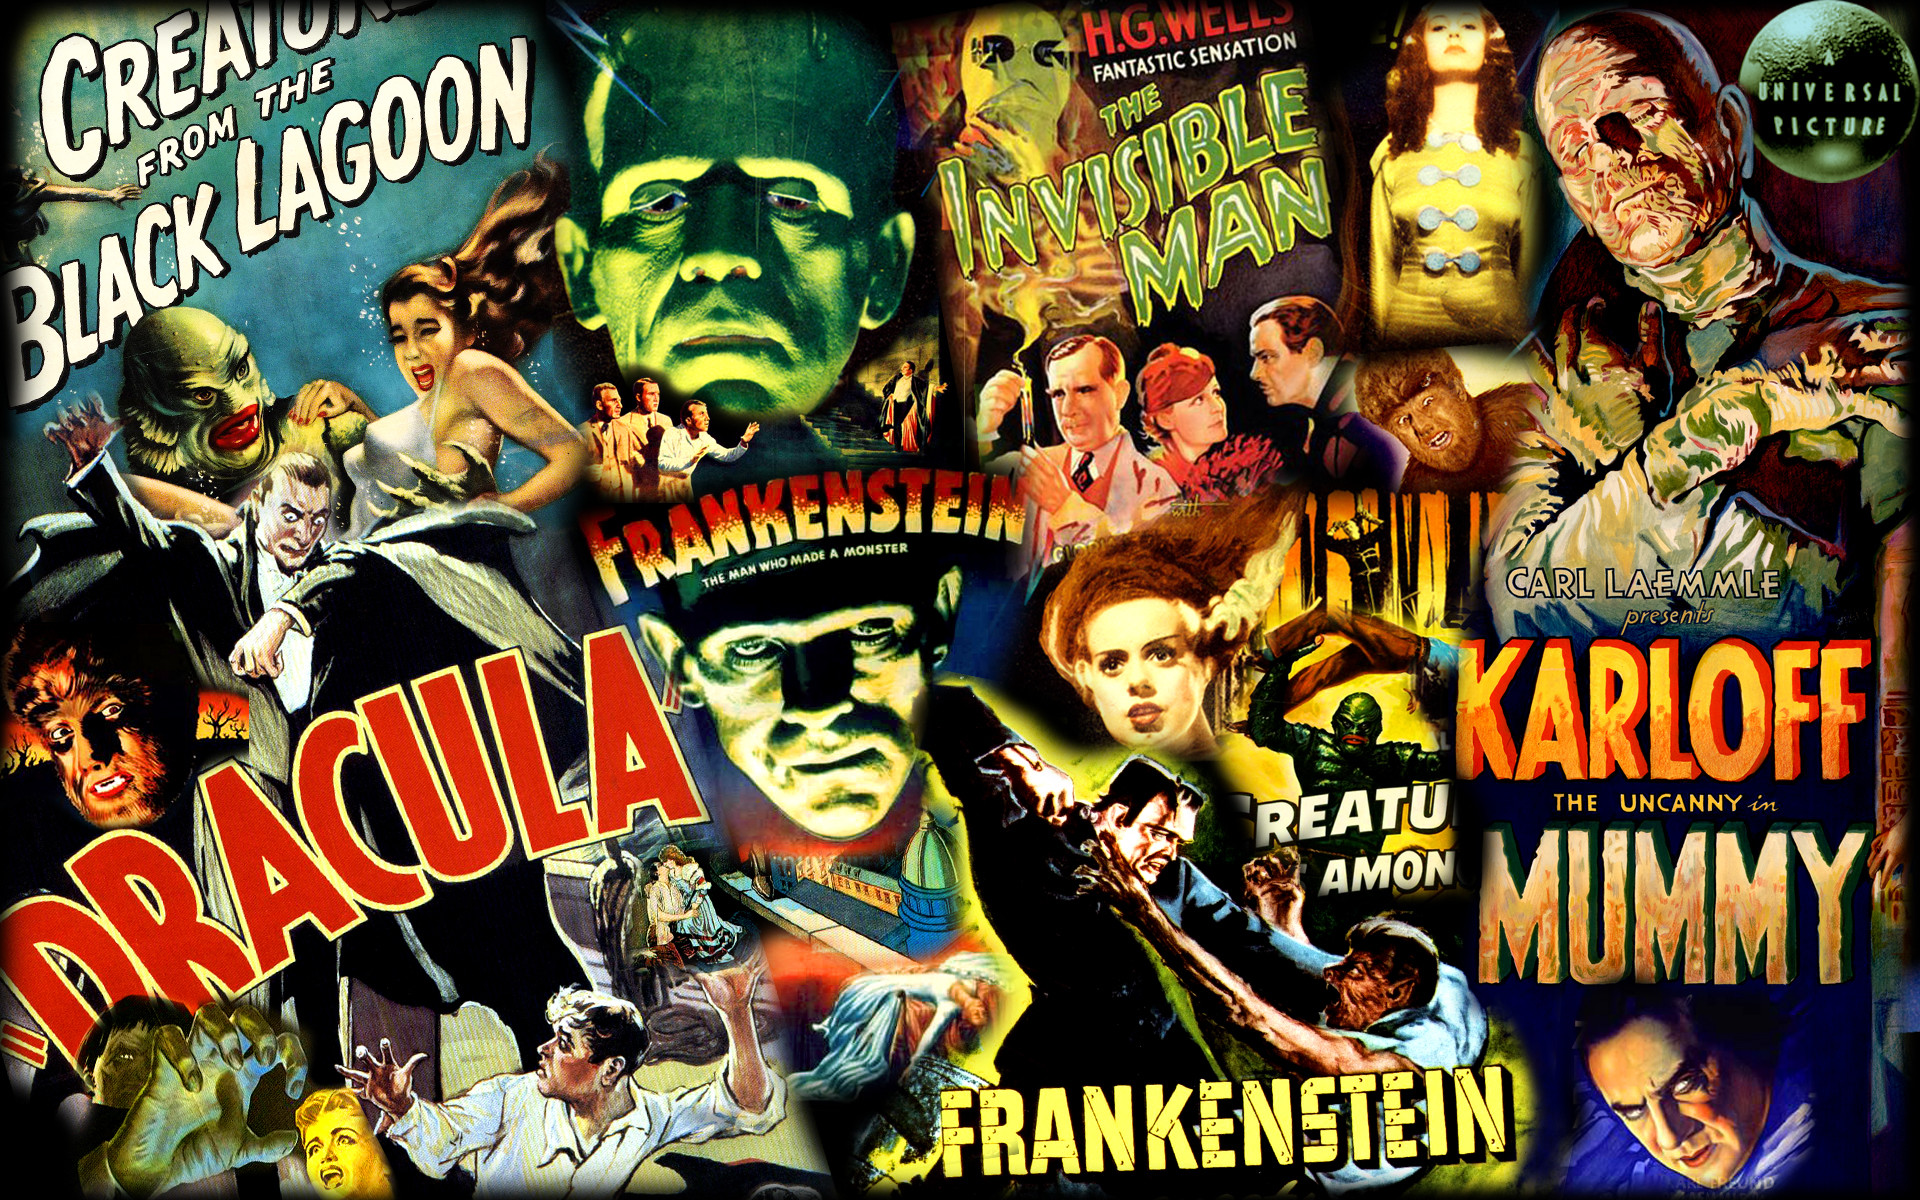 1920x1200 Universal Monsters poster collage/wallpaper. See more at: https ...  Universal Monsters Poster Collage Wallpaper See More At S